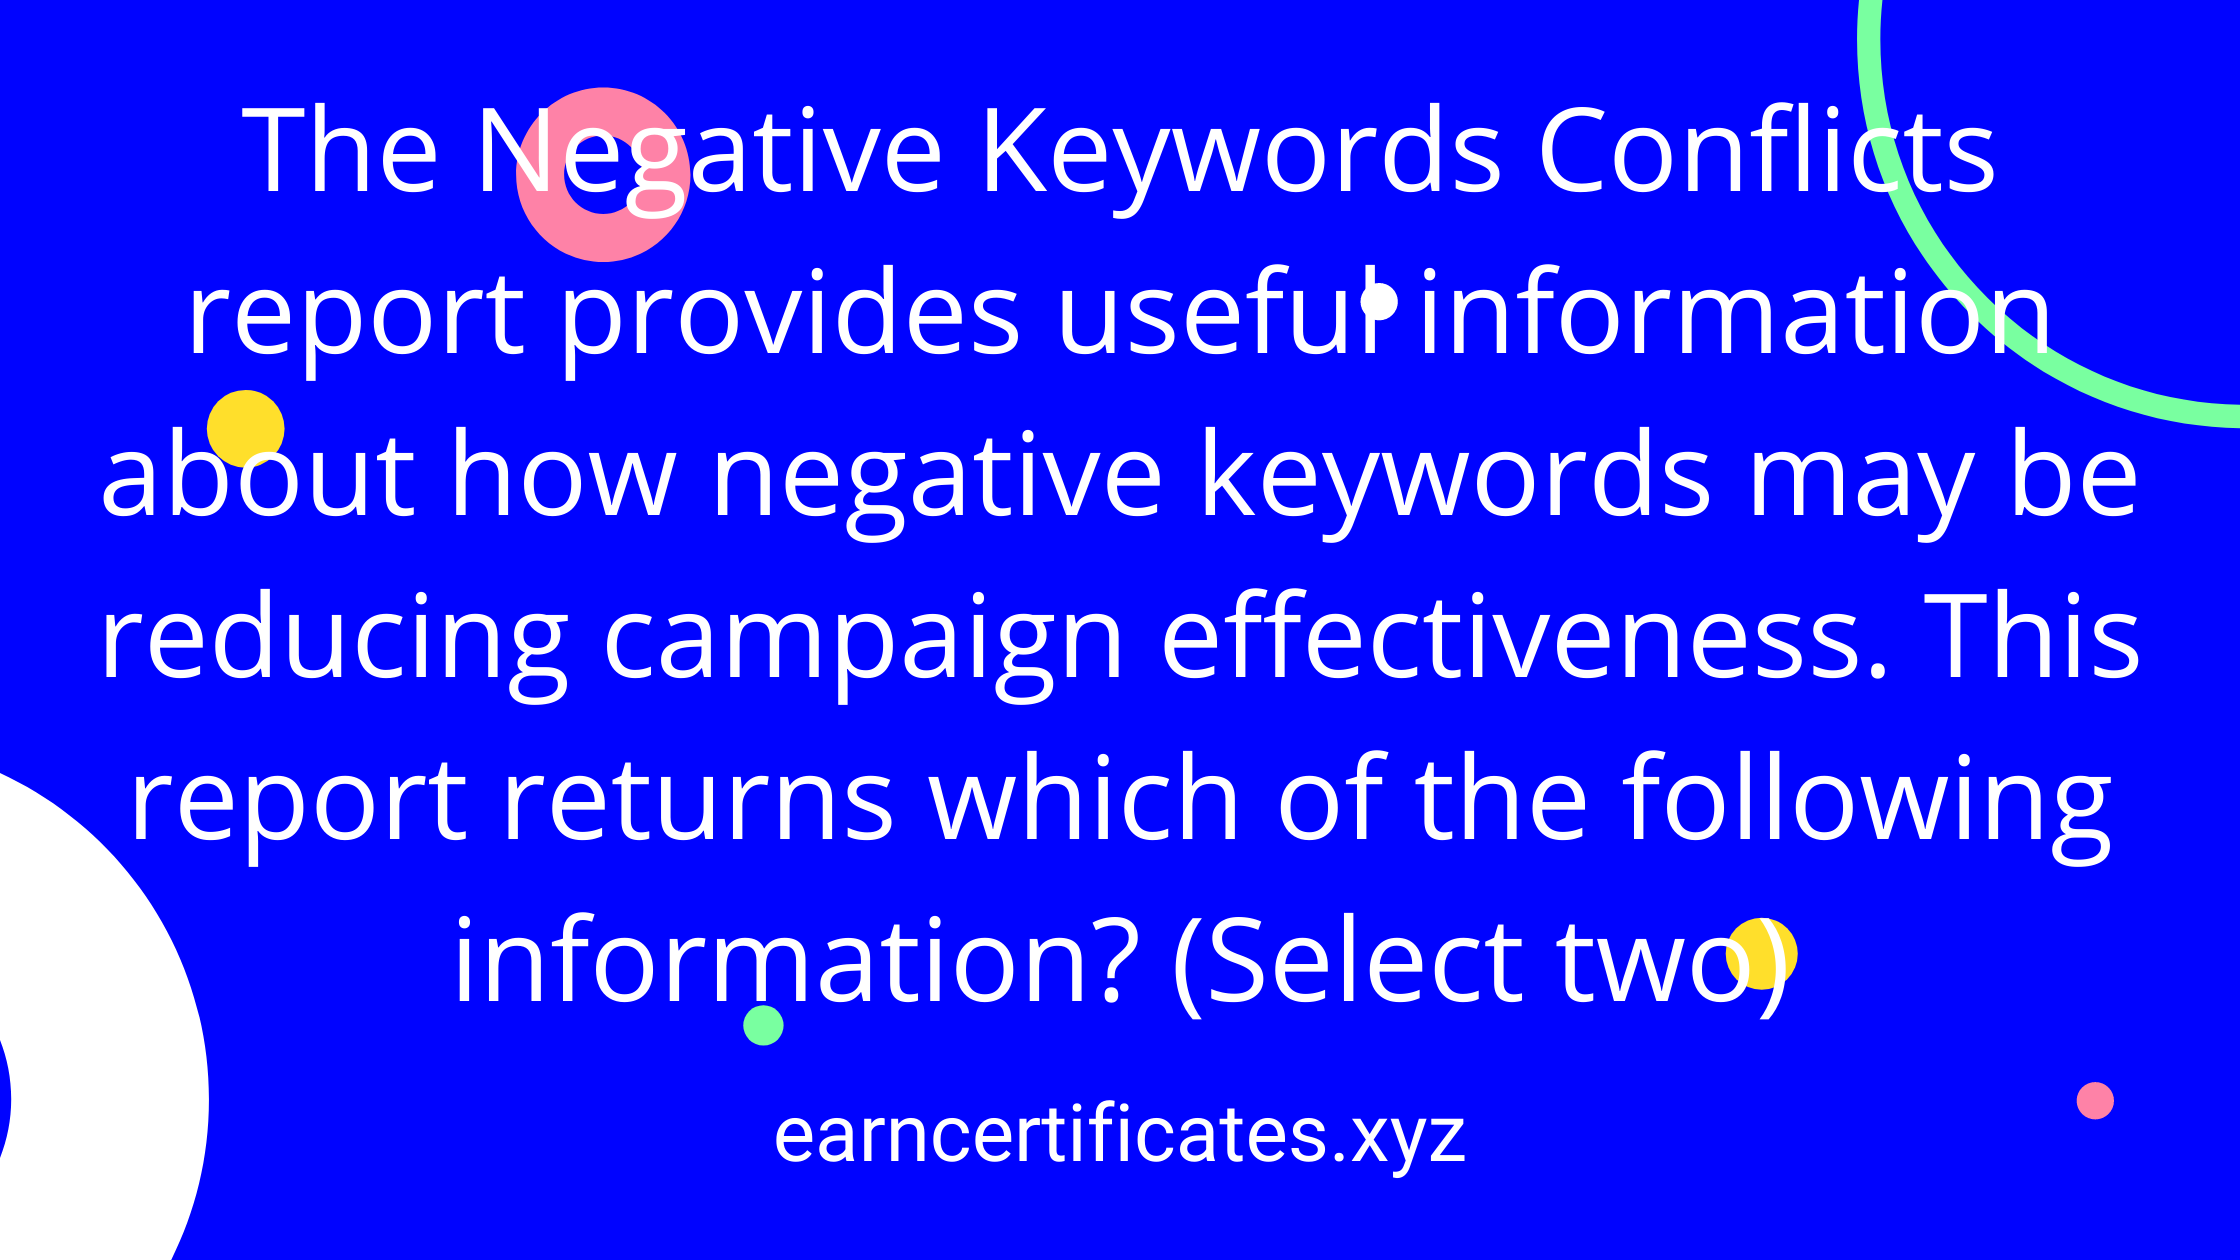 The Negative Keywords Conflicts report provides useful information about how negative keywords may be reducing campaign effectiveness. This report returns which of the following information? (Select two)